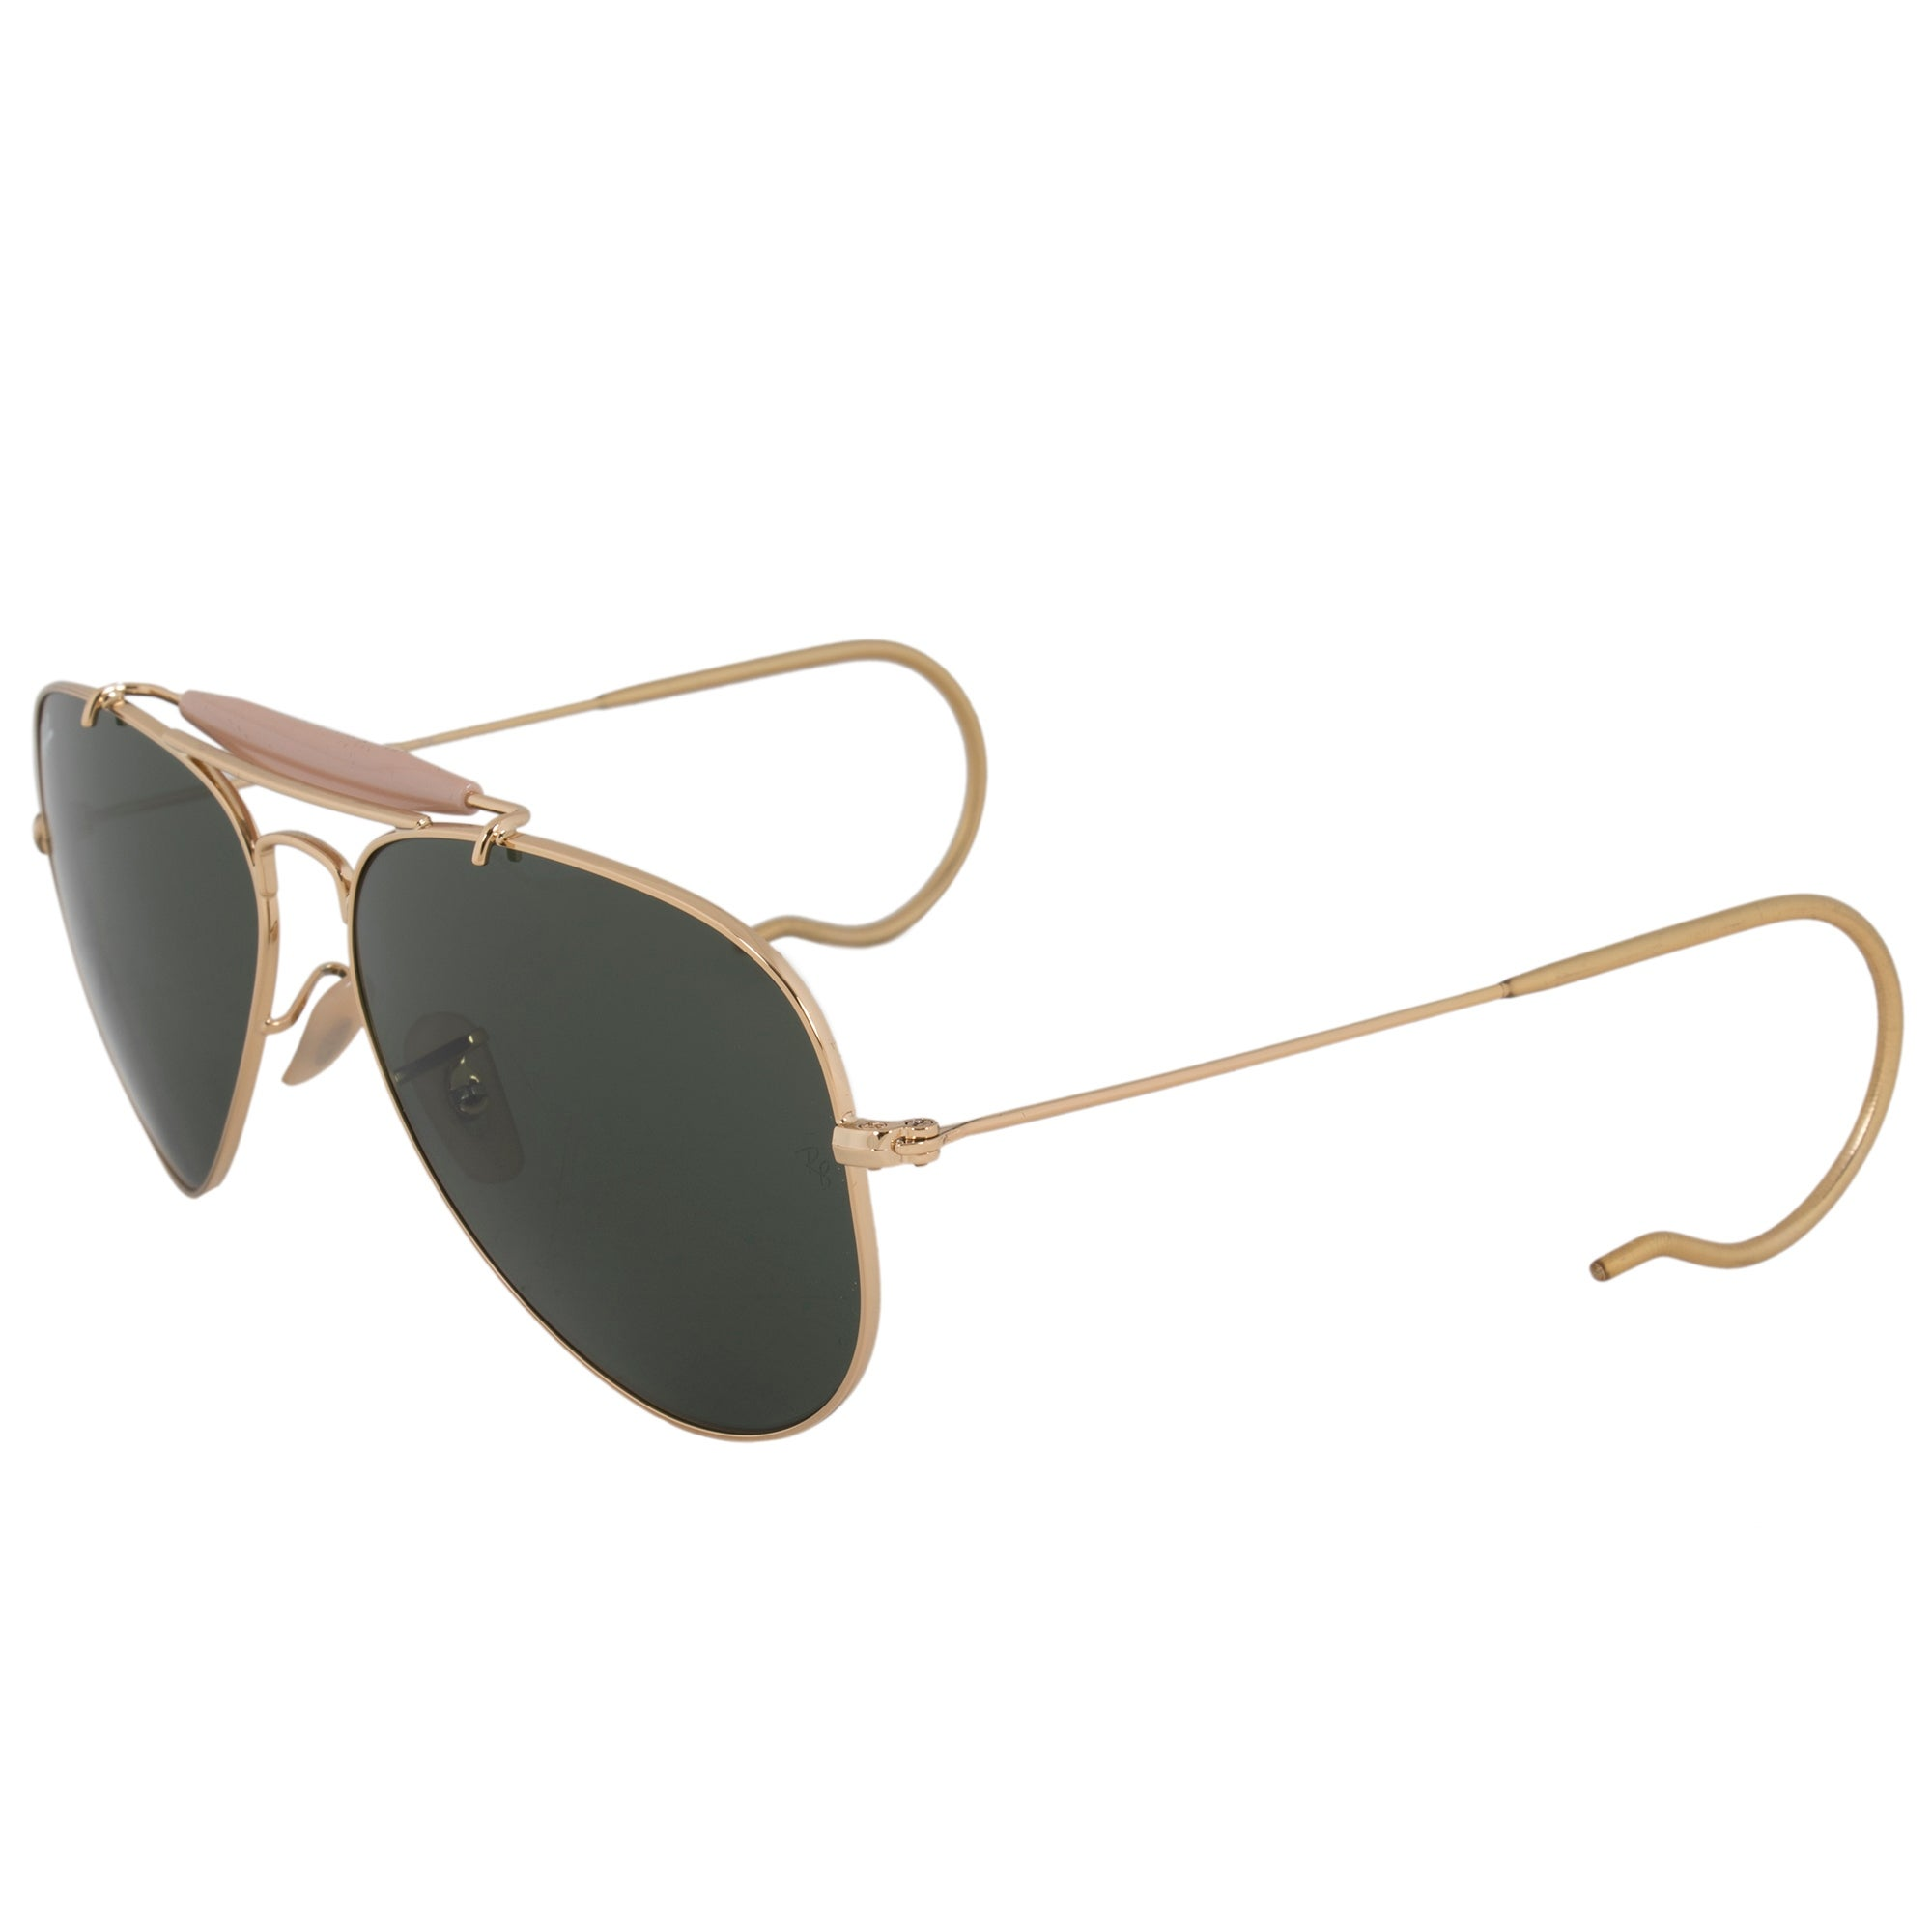 5d81cc057d Shop Ray-Ban Outdoorsman Sunglasses RB3030 L0216 58 - Free Shipping Today -  Overstock - 19622616